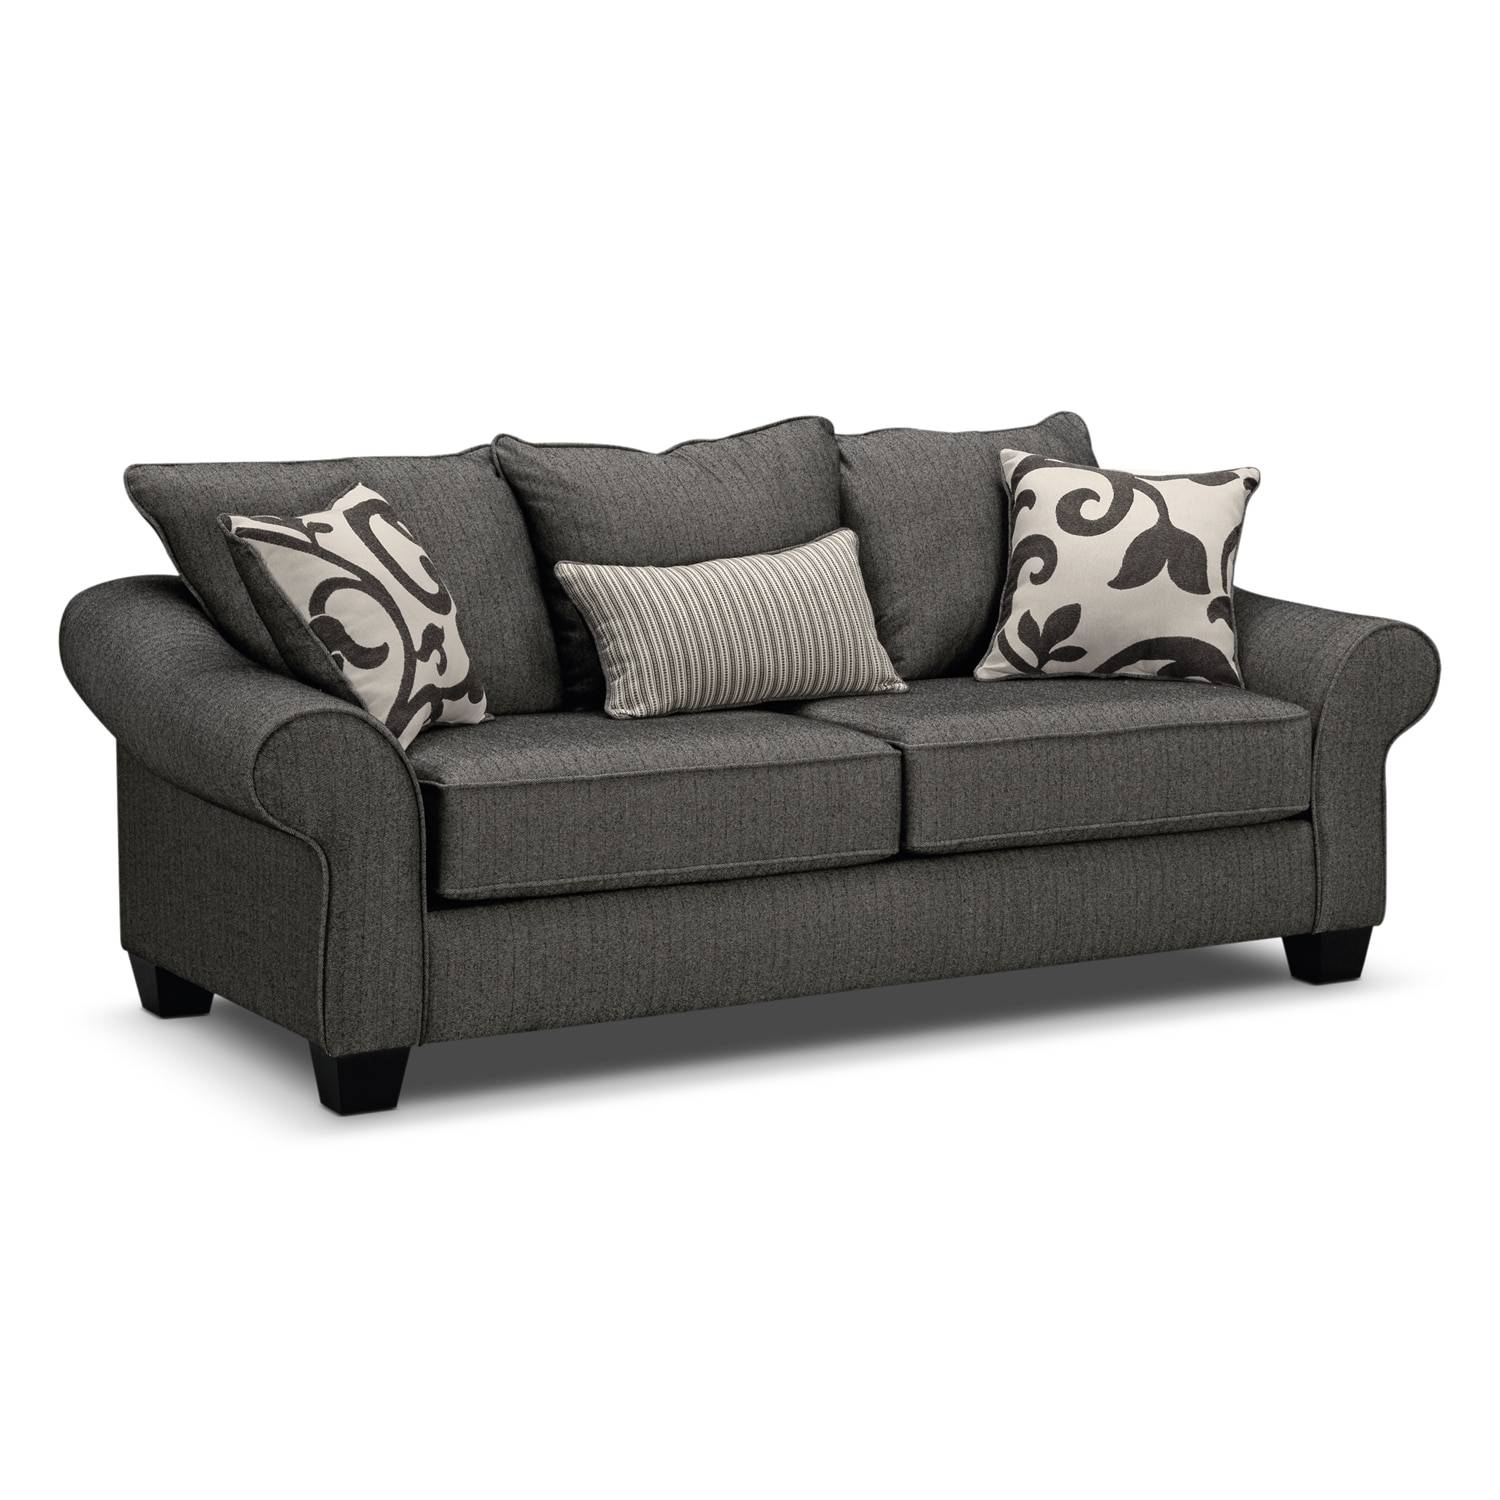 Sleeper Sofas | Value City Furniture | Value City Furniture pertaining to Full Size Sofa Sleepers (Image 13 of 30)